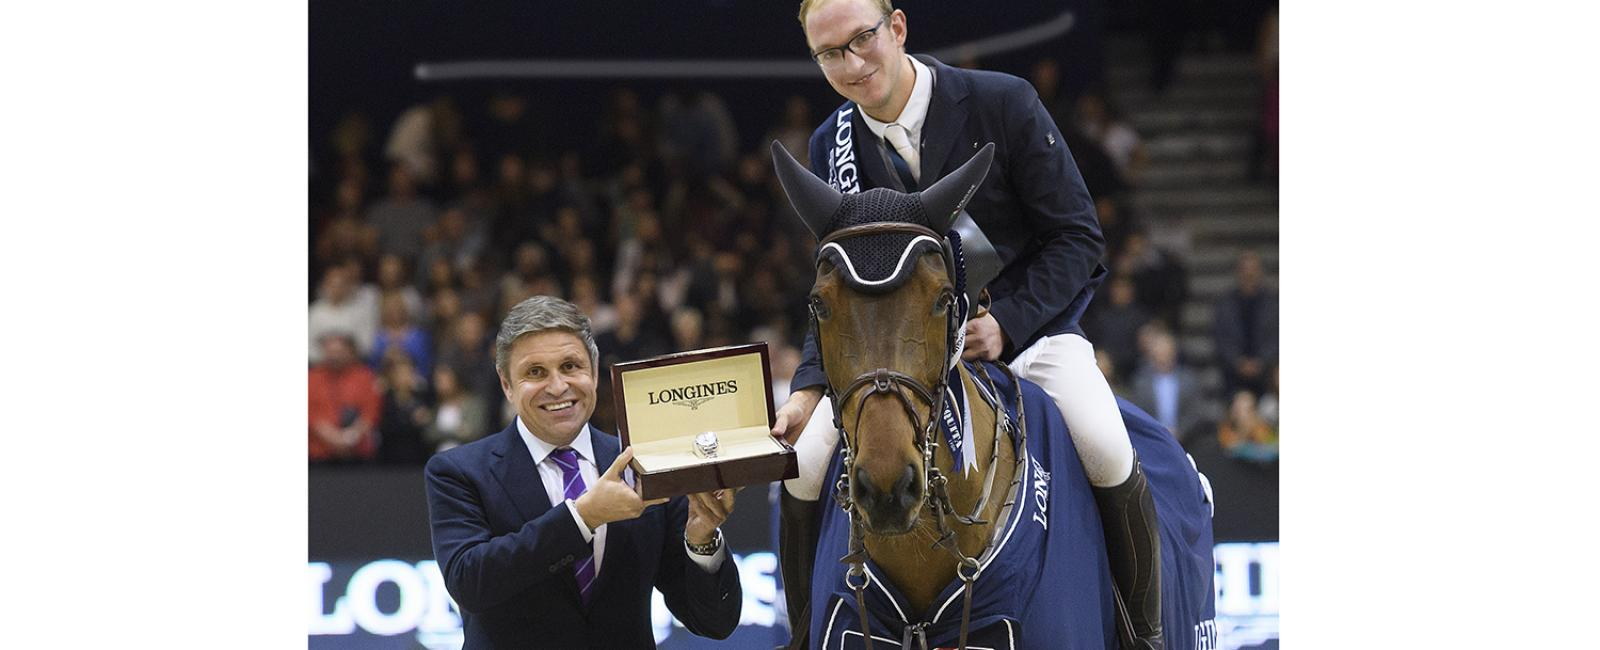 Germany's Tobias Meyer and Cathleen claimed the Longines Grand Prix at Equita Lyon, Official Partner, FEI World Cup, Western European, Germany, Longines